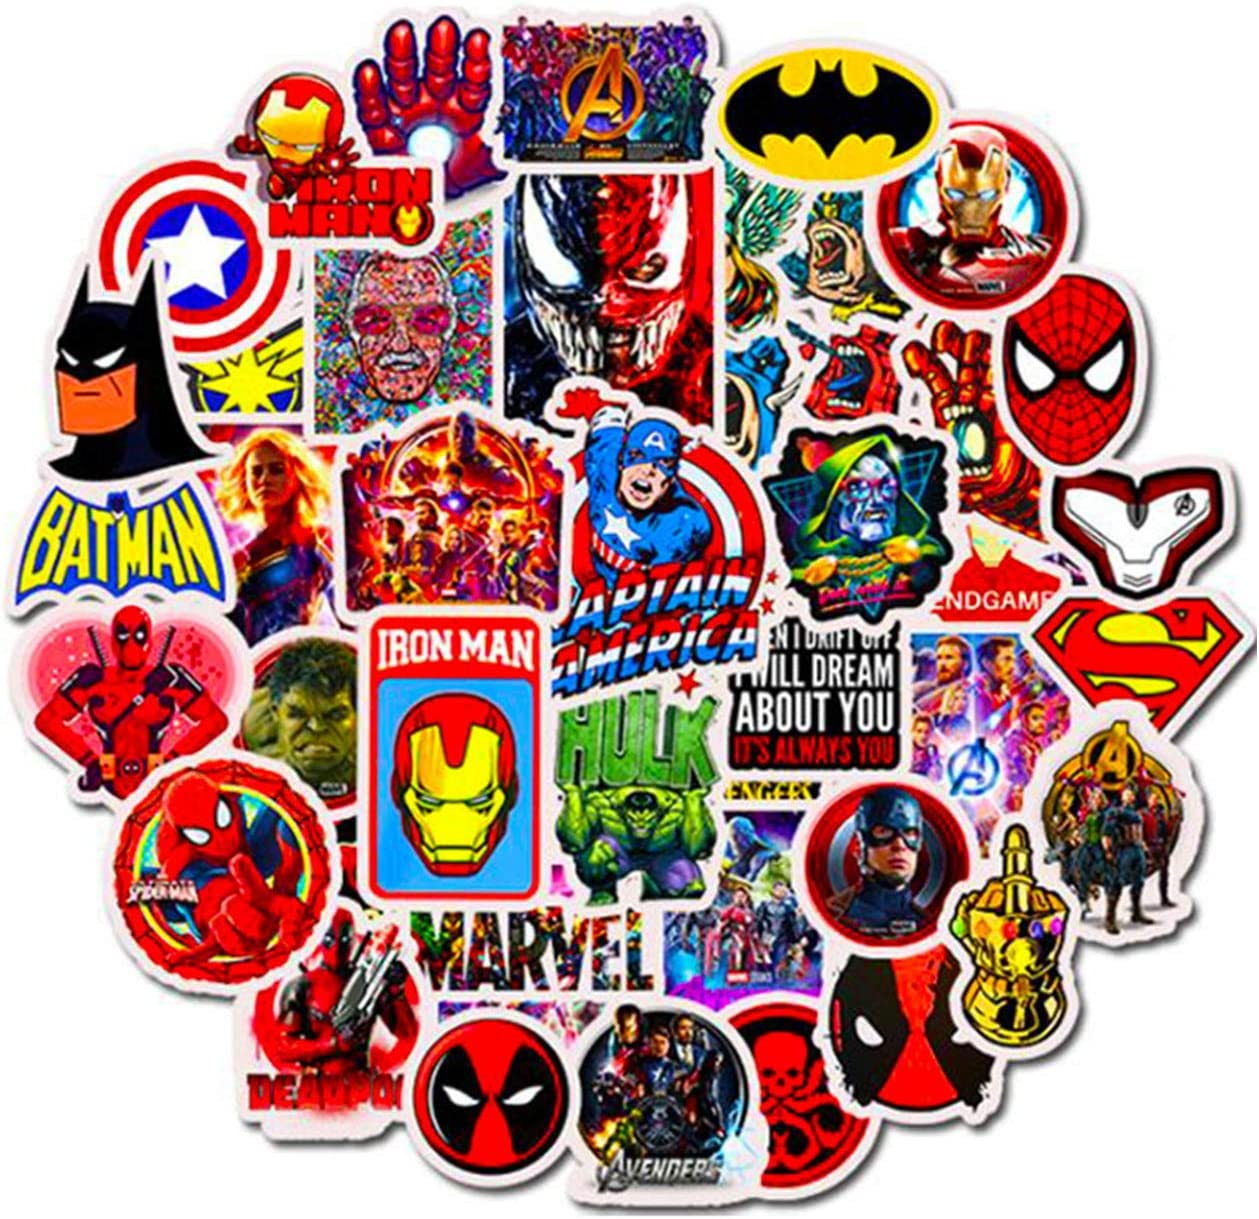 PAMITD 50PCS (Marvel DC) Superhero Stickers Hero Spider-Man Superman Iron Man Vinyl Laptop Decal Stickers Waterproof Vinyl Personalized Stickers for Computer, Trunk, Luggage Door Laptop Luggage